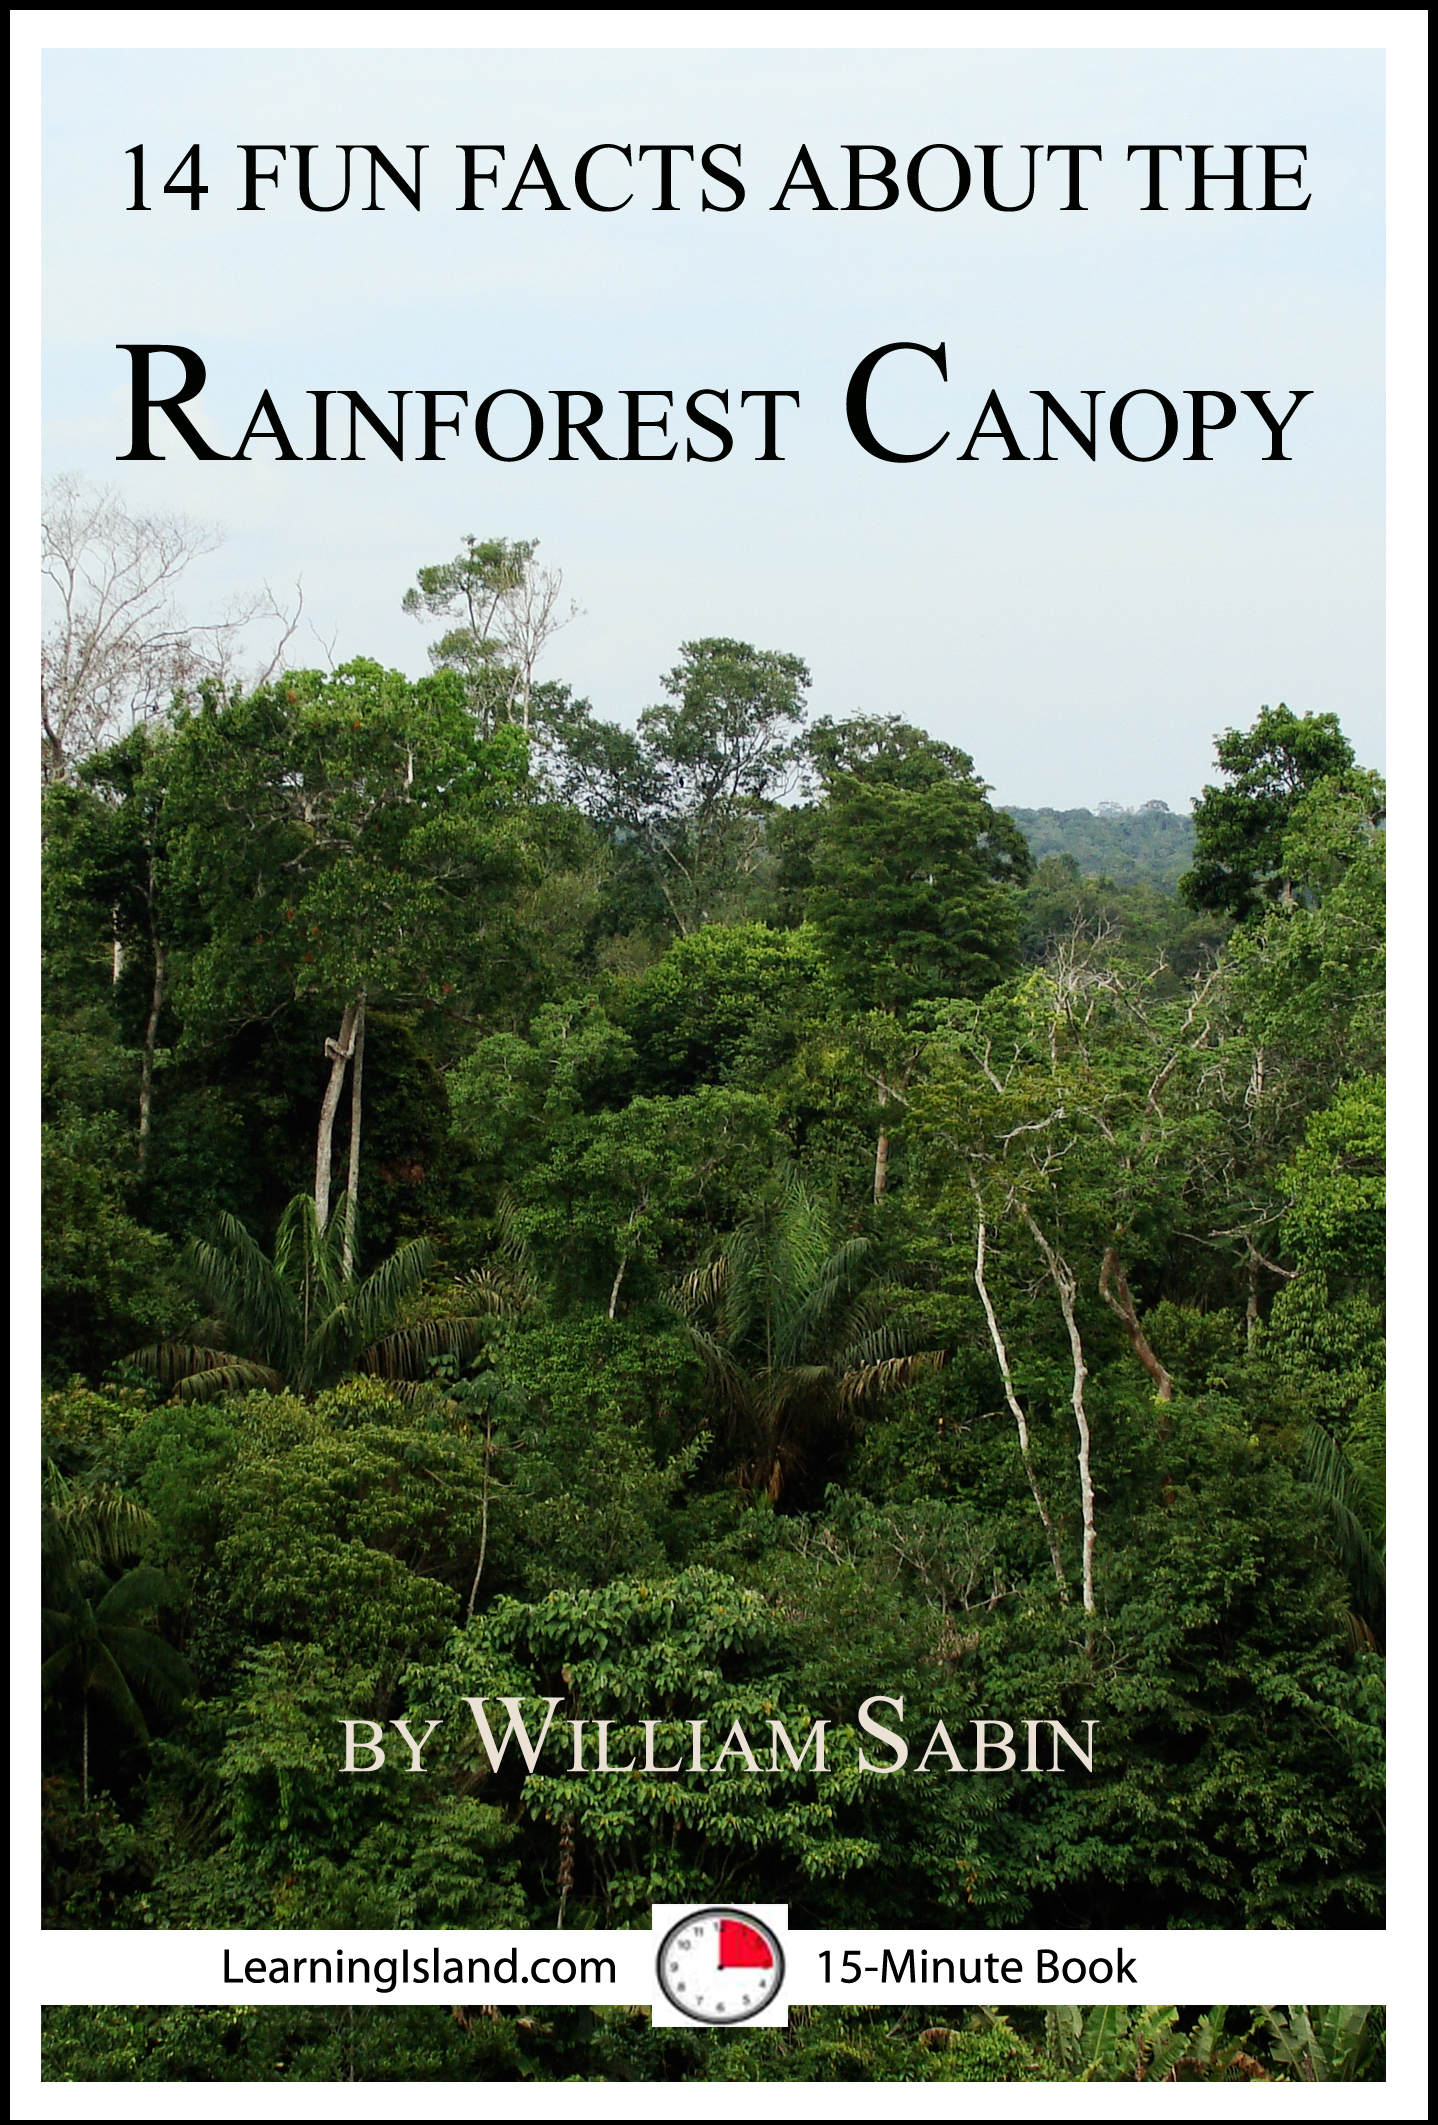 14 Fun Facts About the Rainforest Canopy